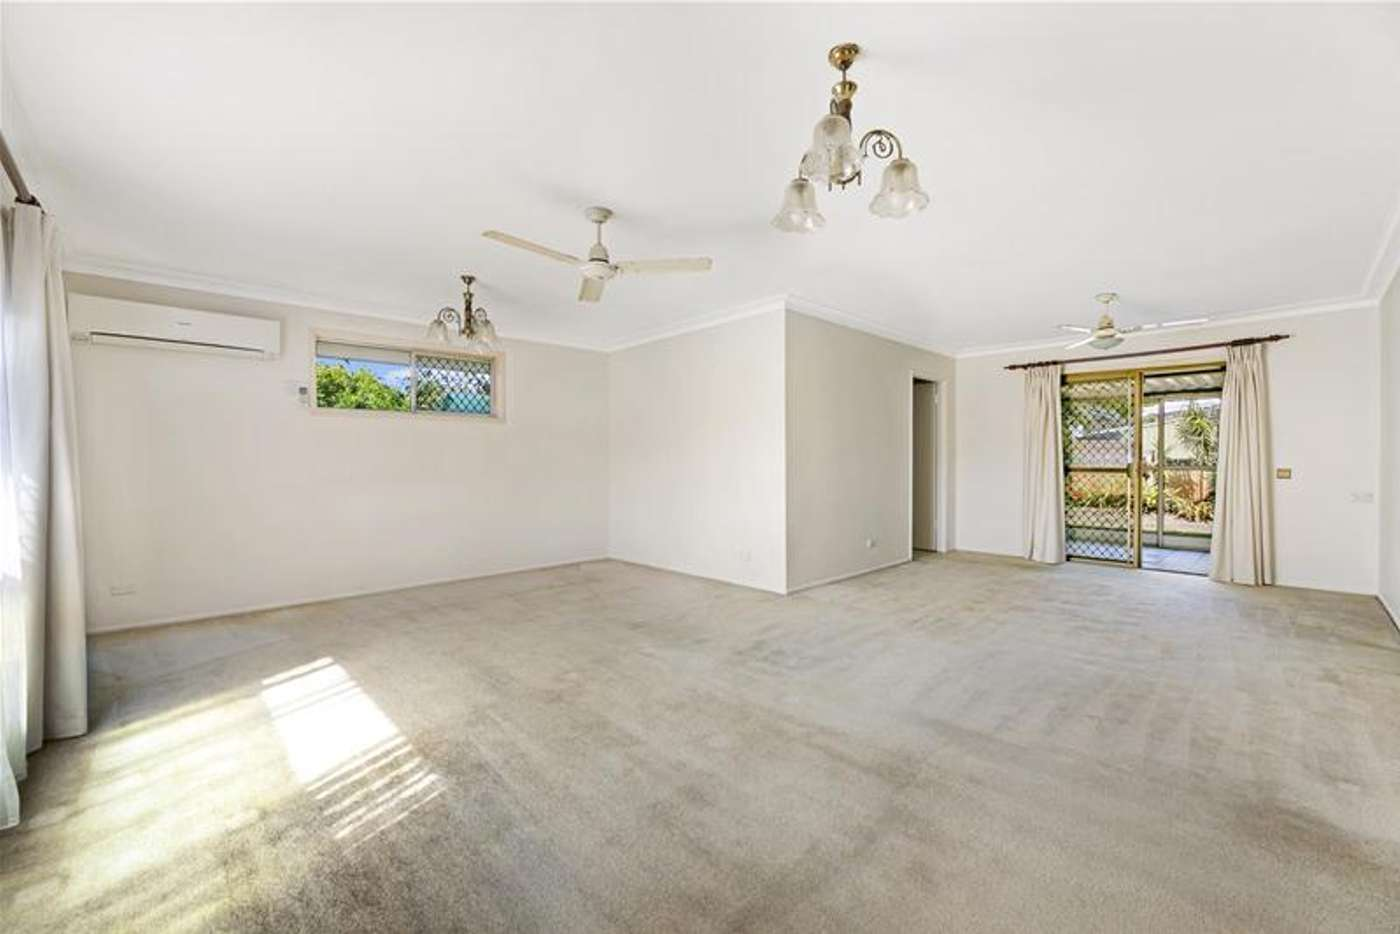 Fifth view of Homely house listing, 4 Myrtle Court, Palm Beach QLD 4221